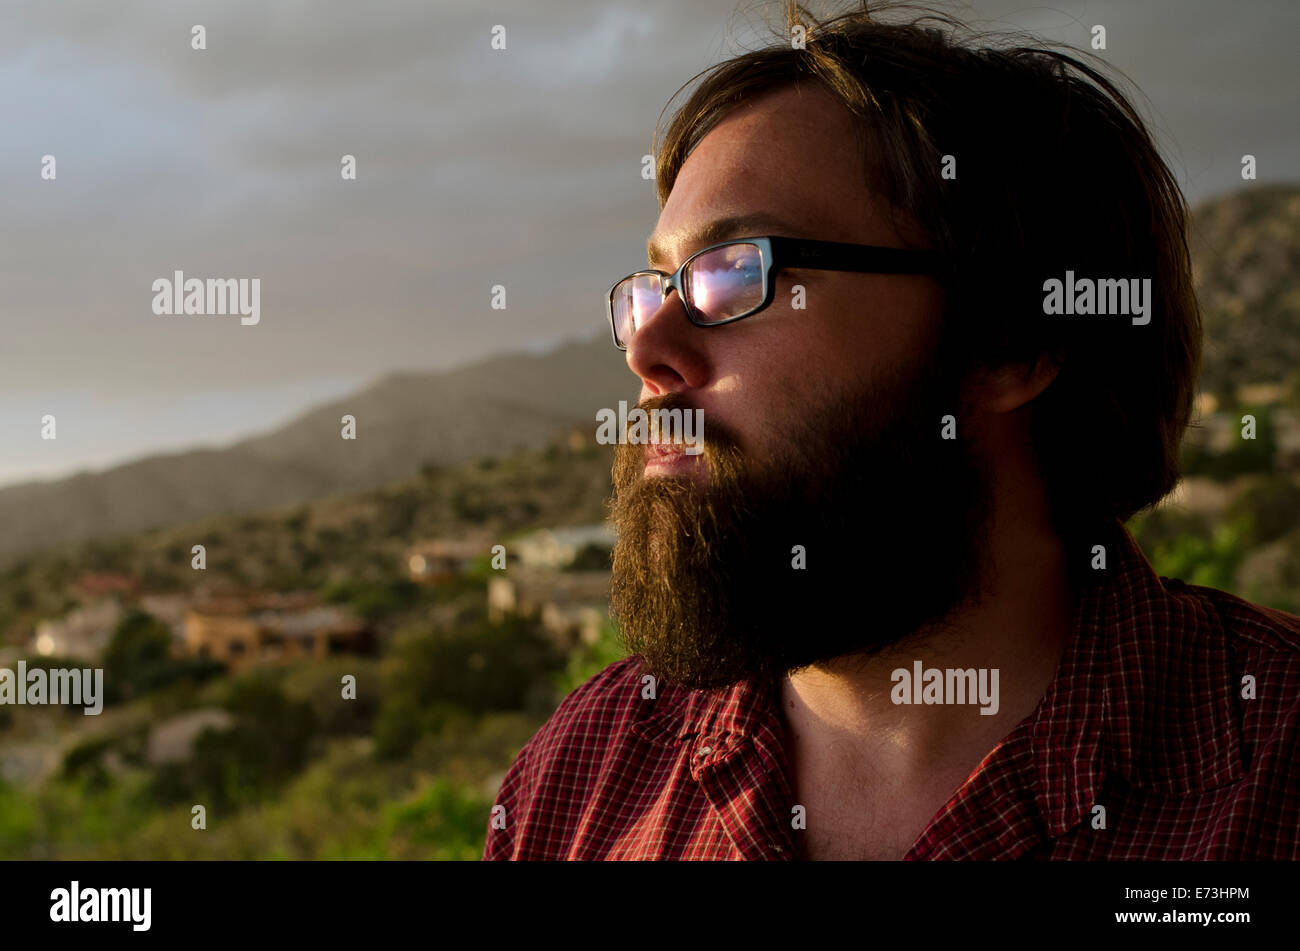 A man in his late twenties, takes in the view overlooking the city of Albuquerque, New Mexico. - Stock Image